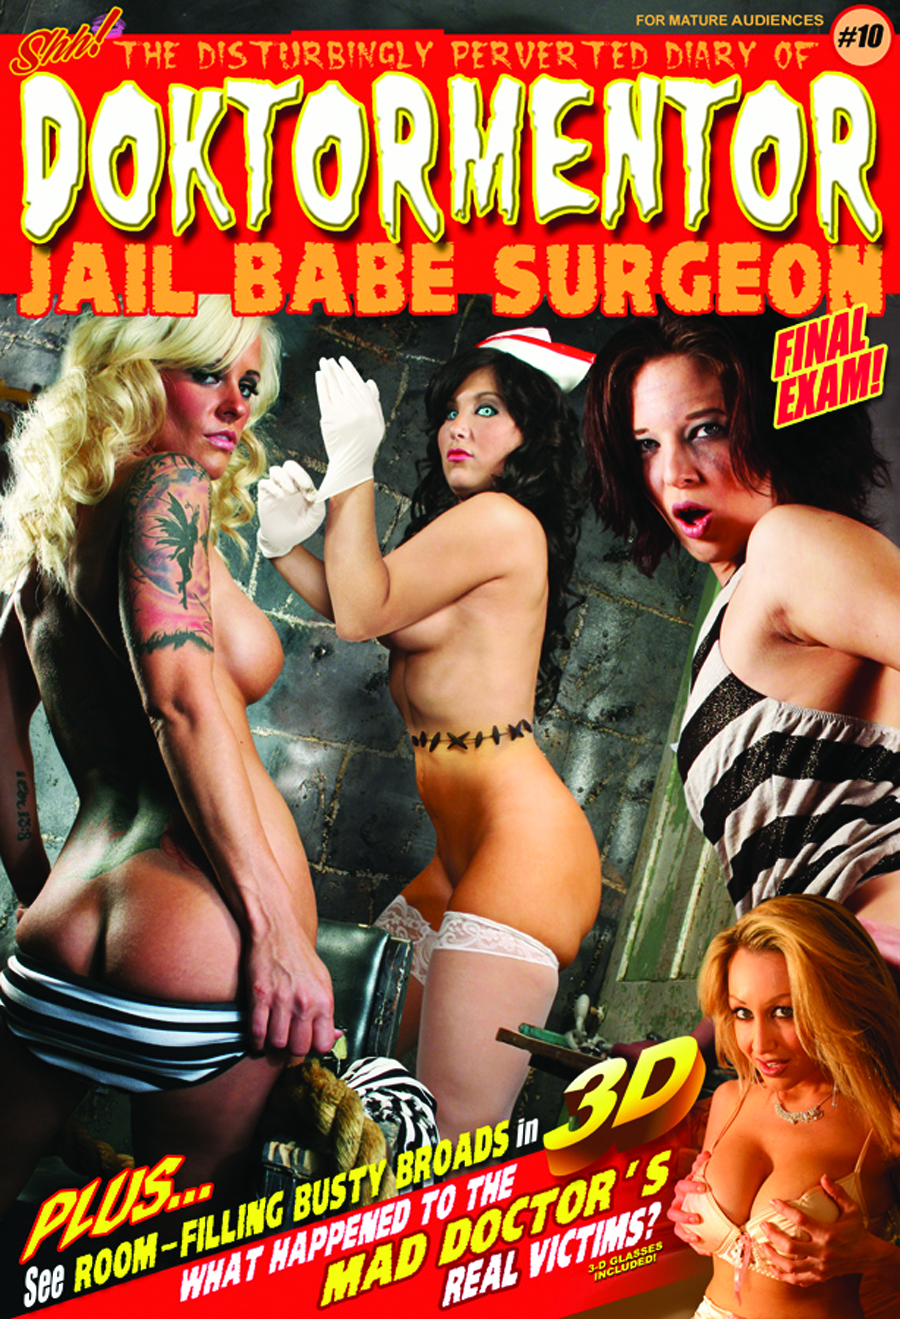 DPD DOKTORMENTOR JAIL BABE SURGEON #10